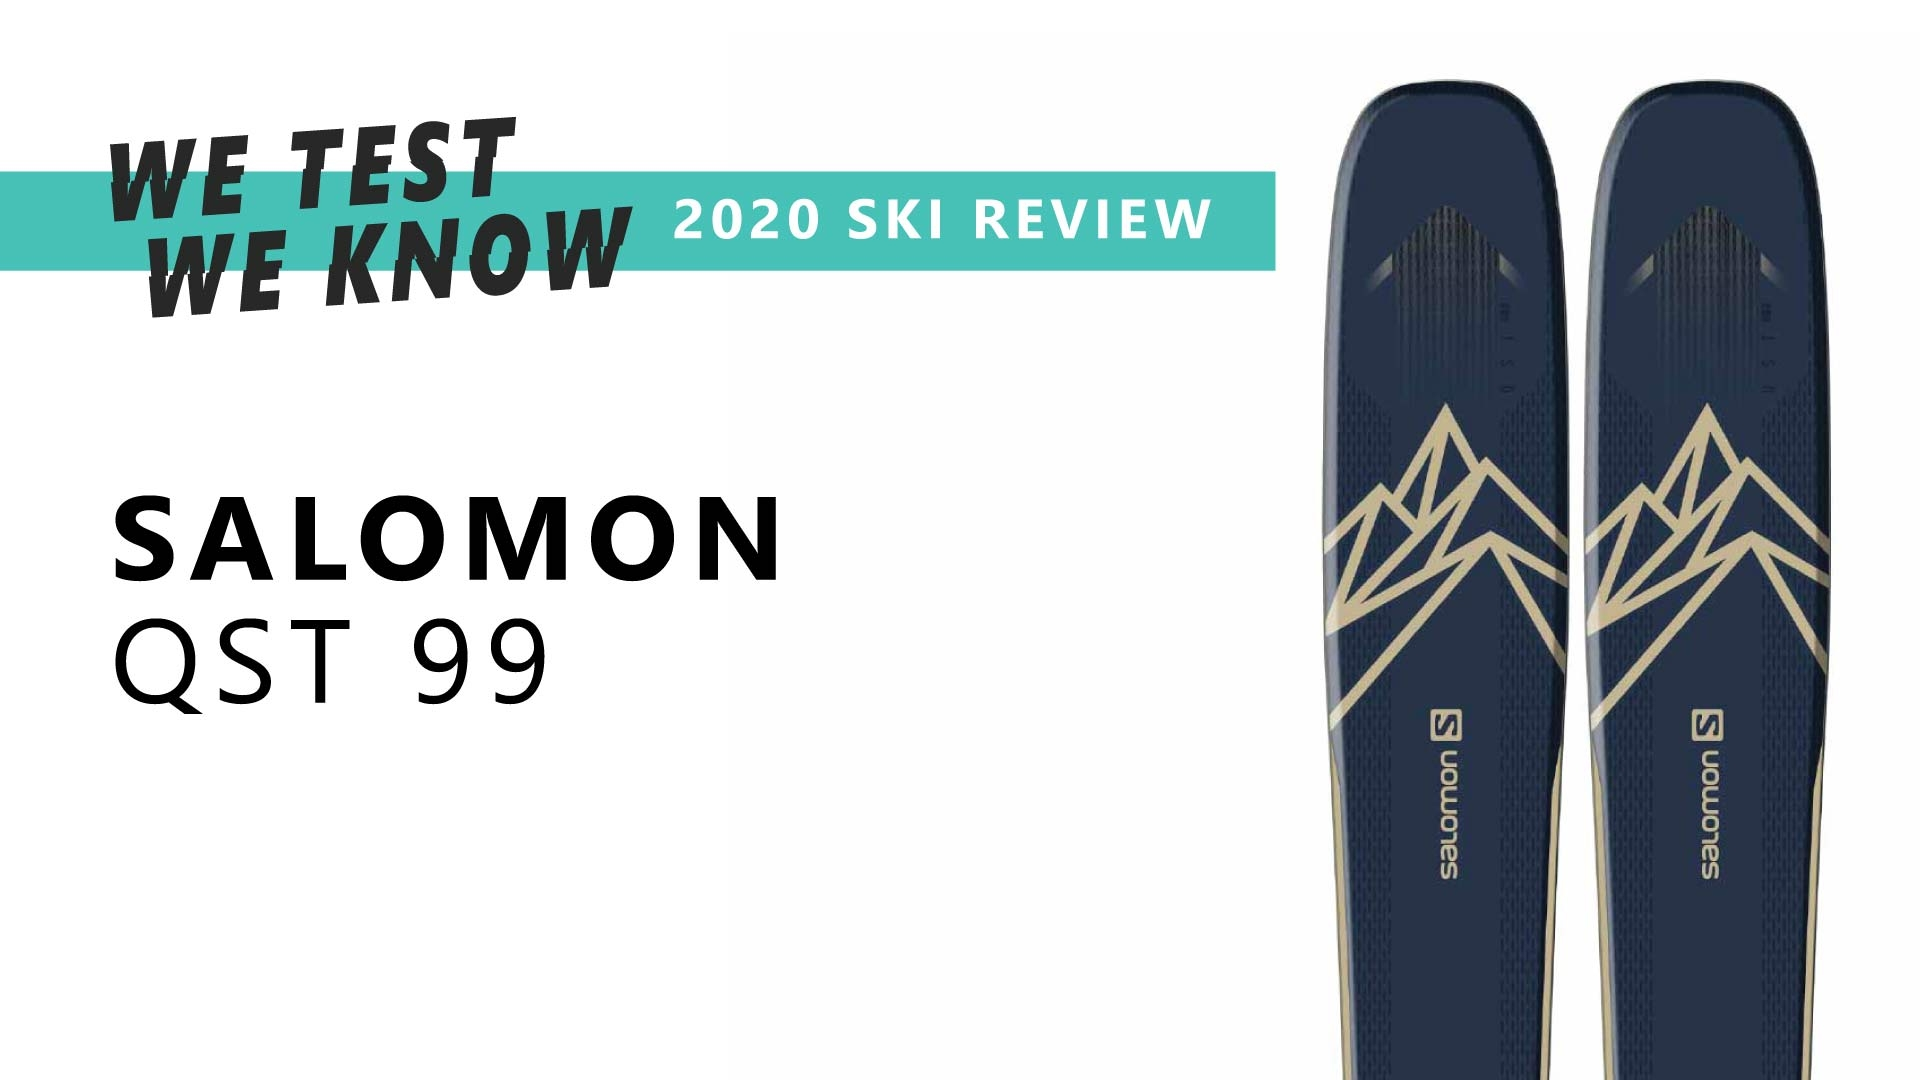 Salomon QST 99 - 2020 Ski Review